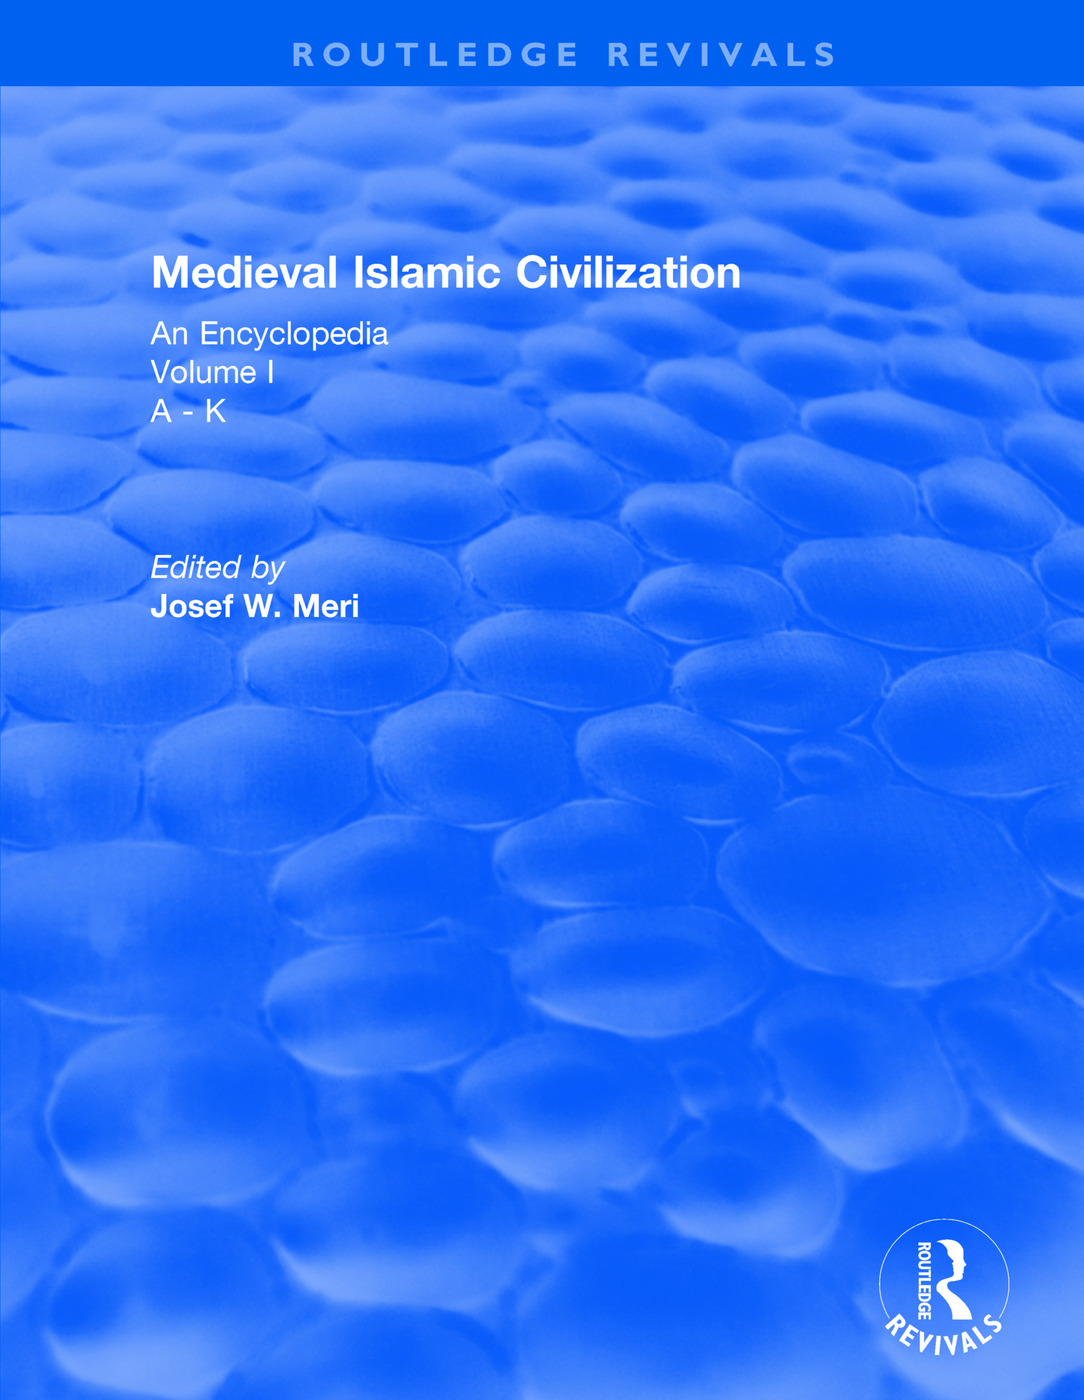 Routledge Revivals: Medieval Islamic Civilization (2006): An Encyclopedia - Volume I book cover